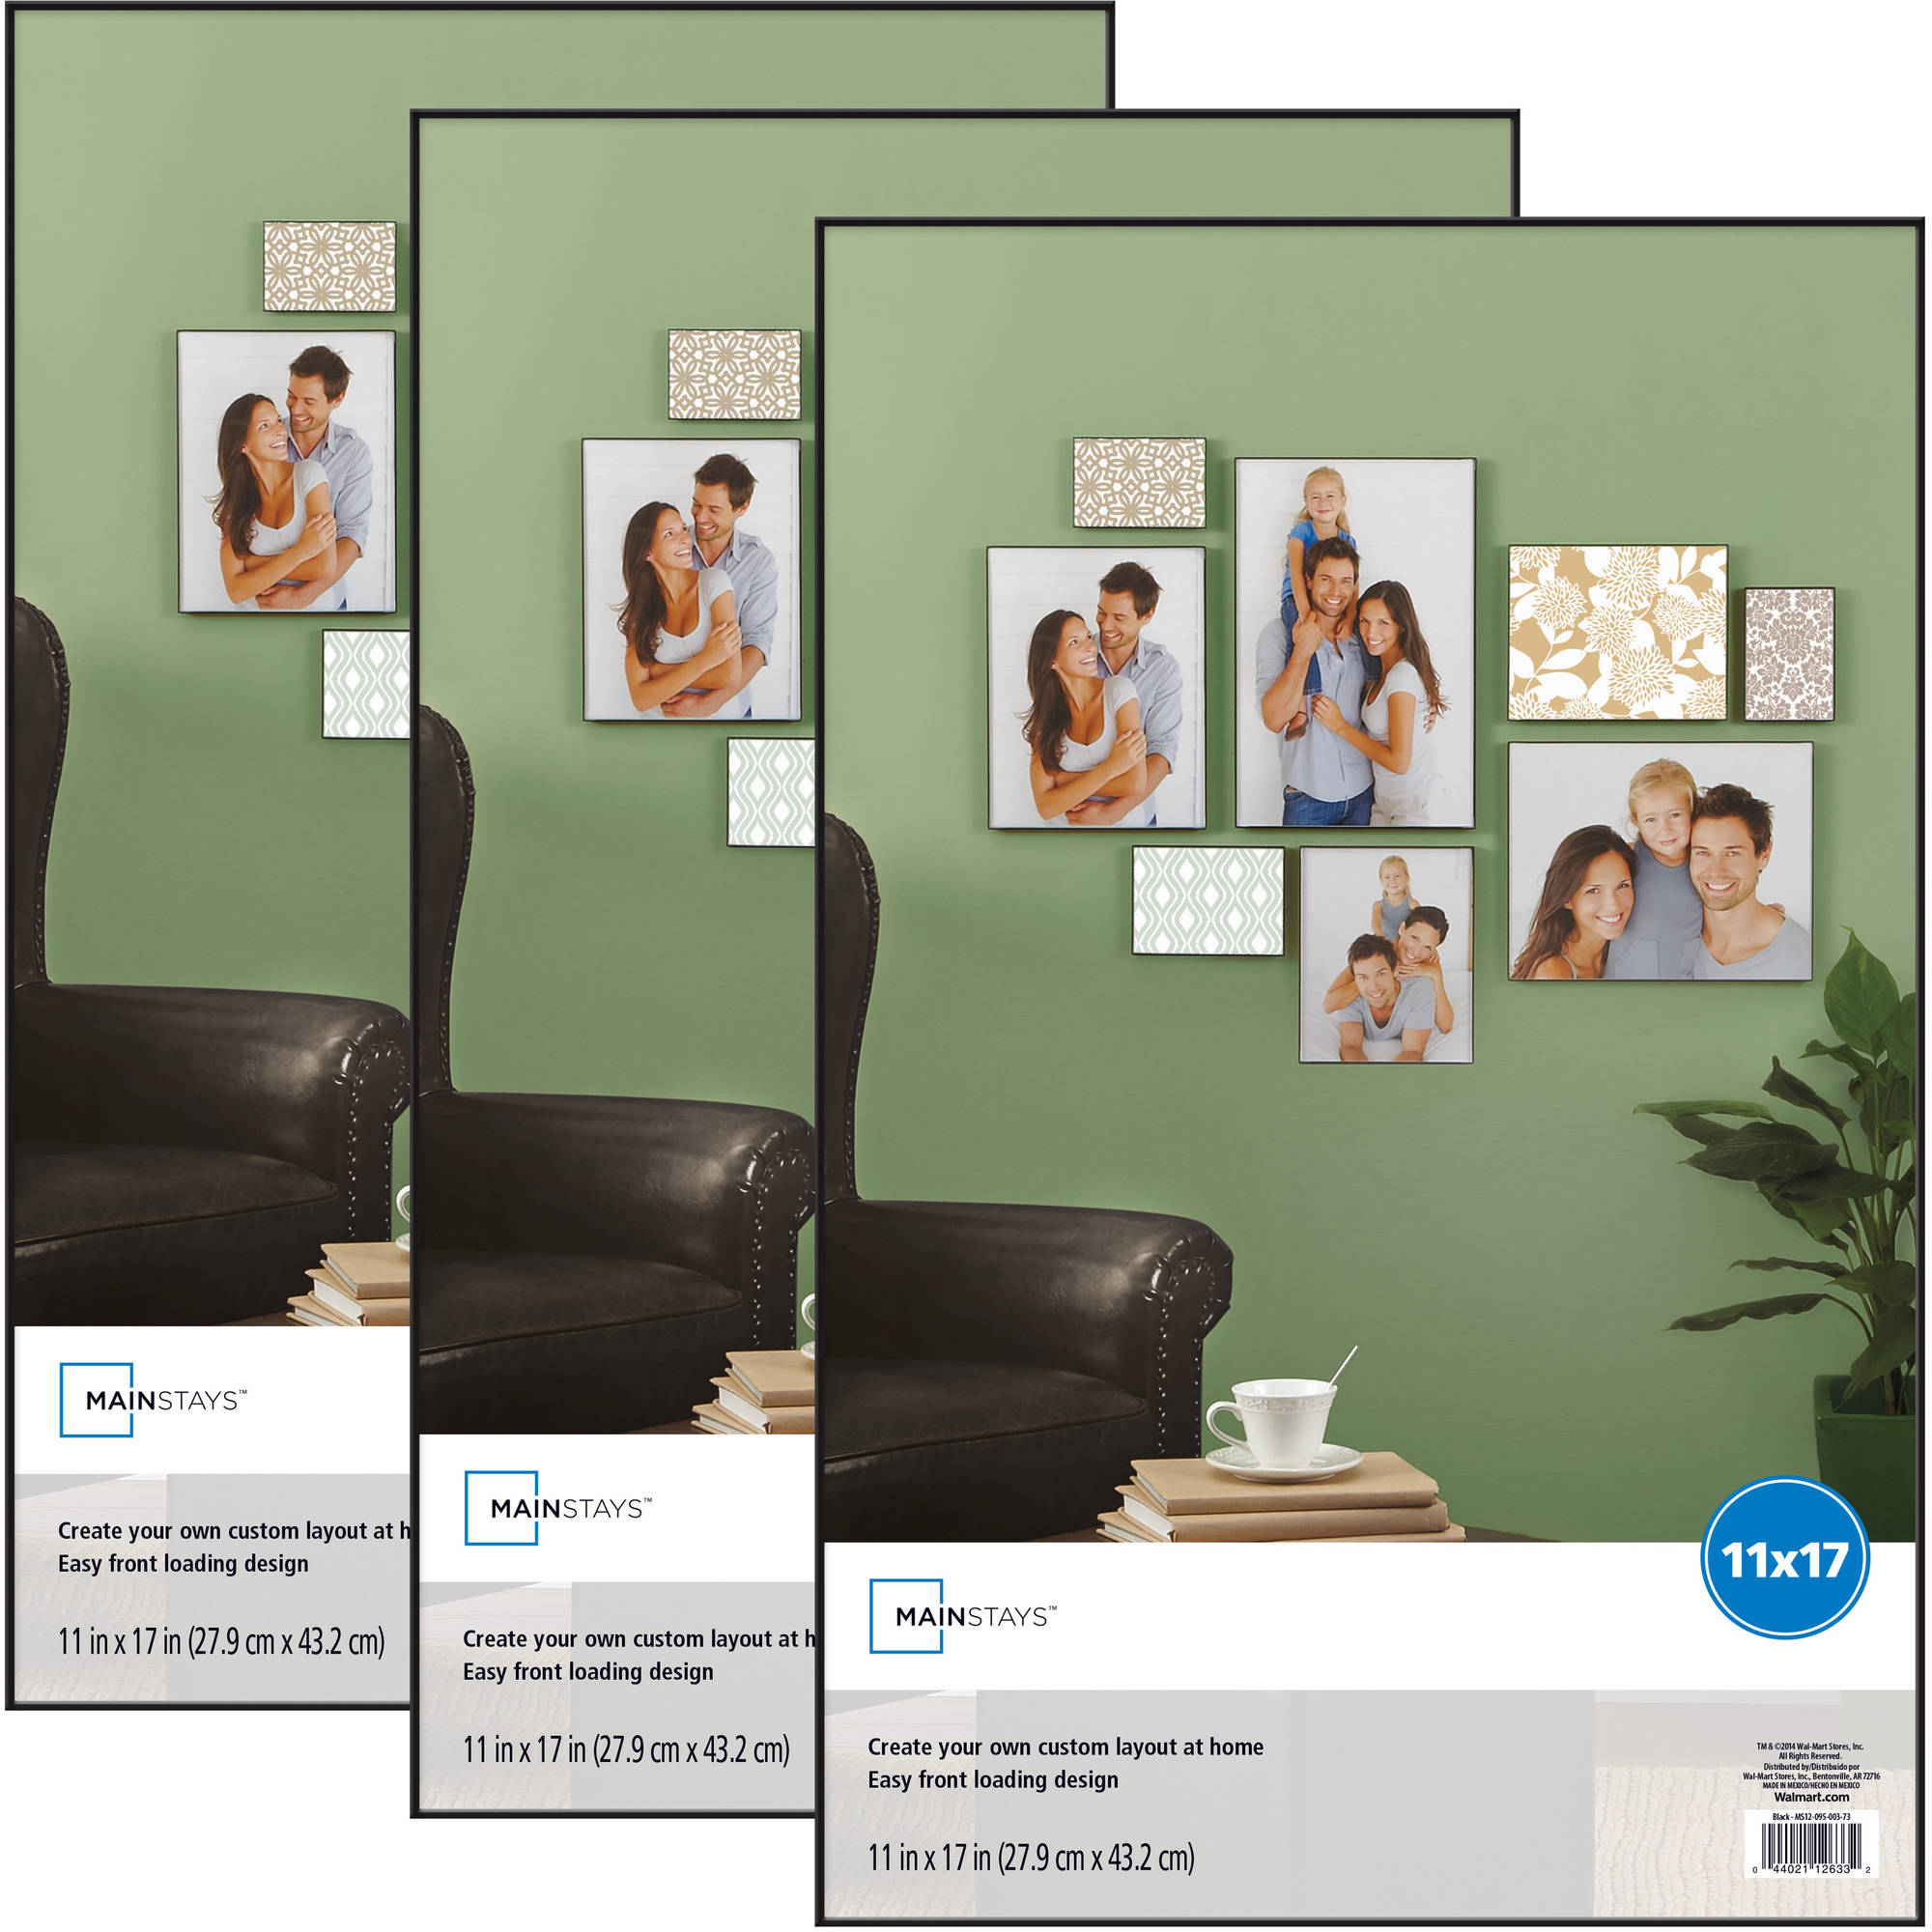 mainstays 11x17 format picture frame set of 3 walmartcom